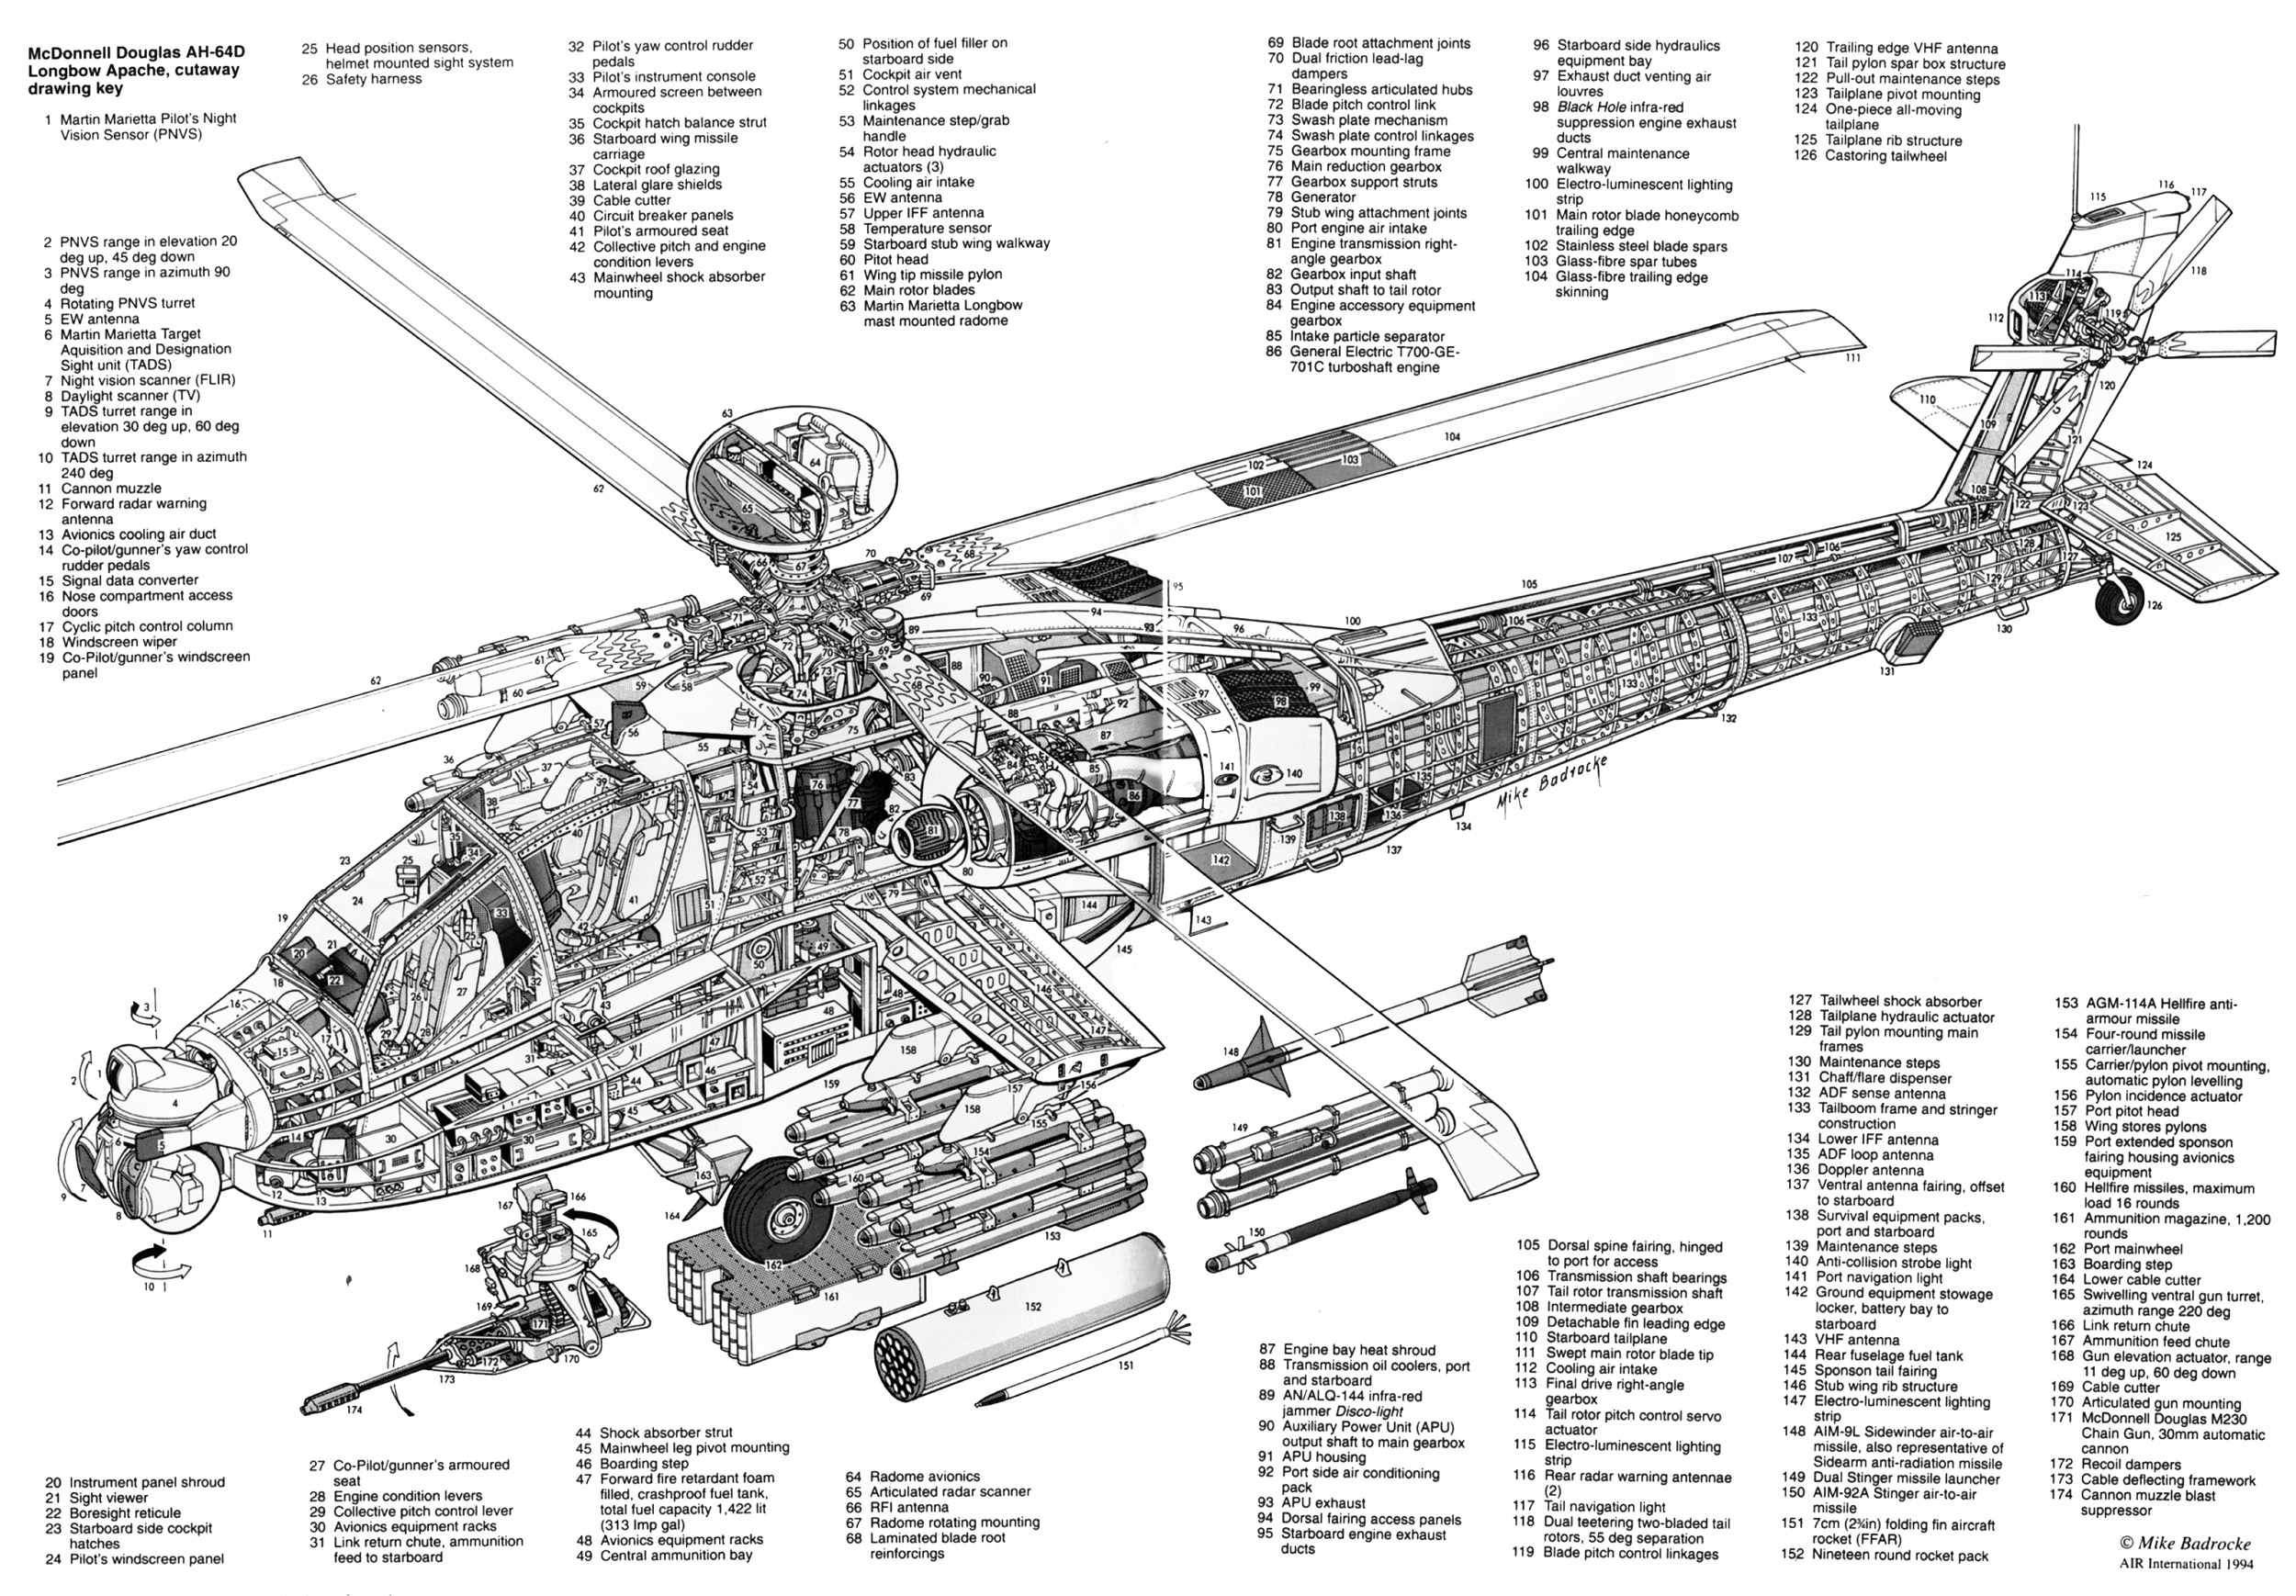 War Eagle Wiring Schematics Diagrams Schematic Vehicle Cutaway Diagram Piping Ductwork Motorcycle